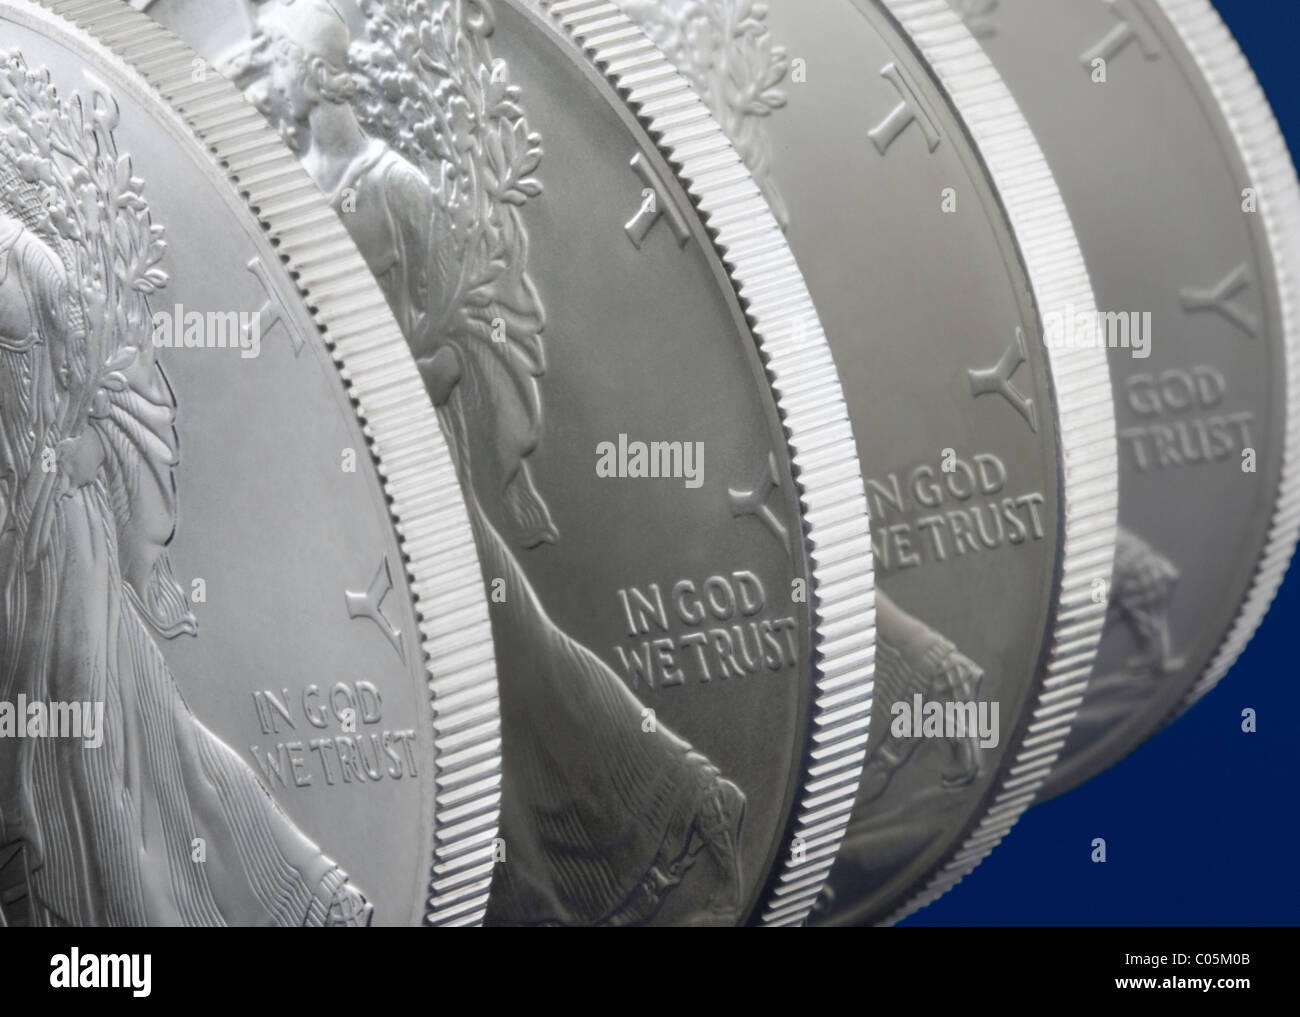 One ounce Walking Liberty US silver Eagle coins - Stock Image